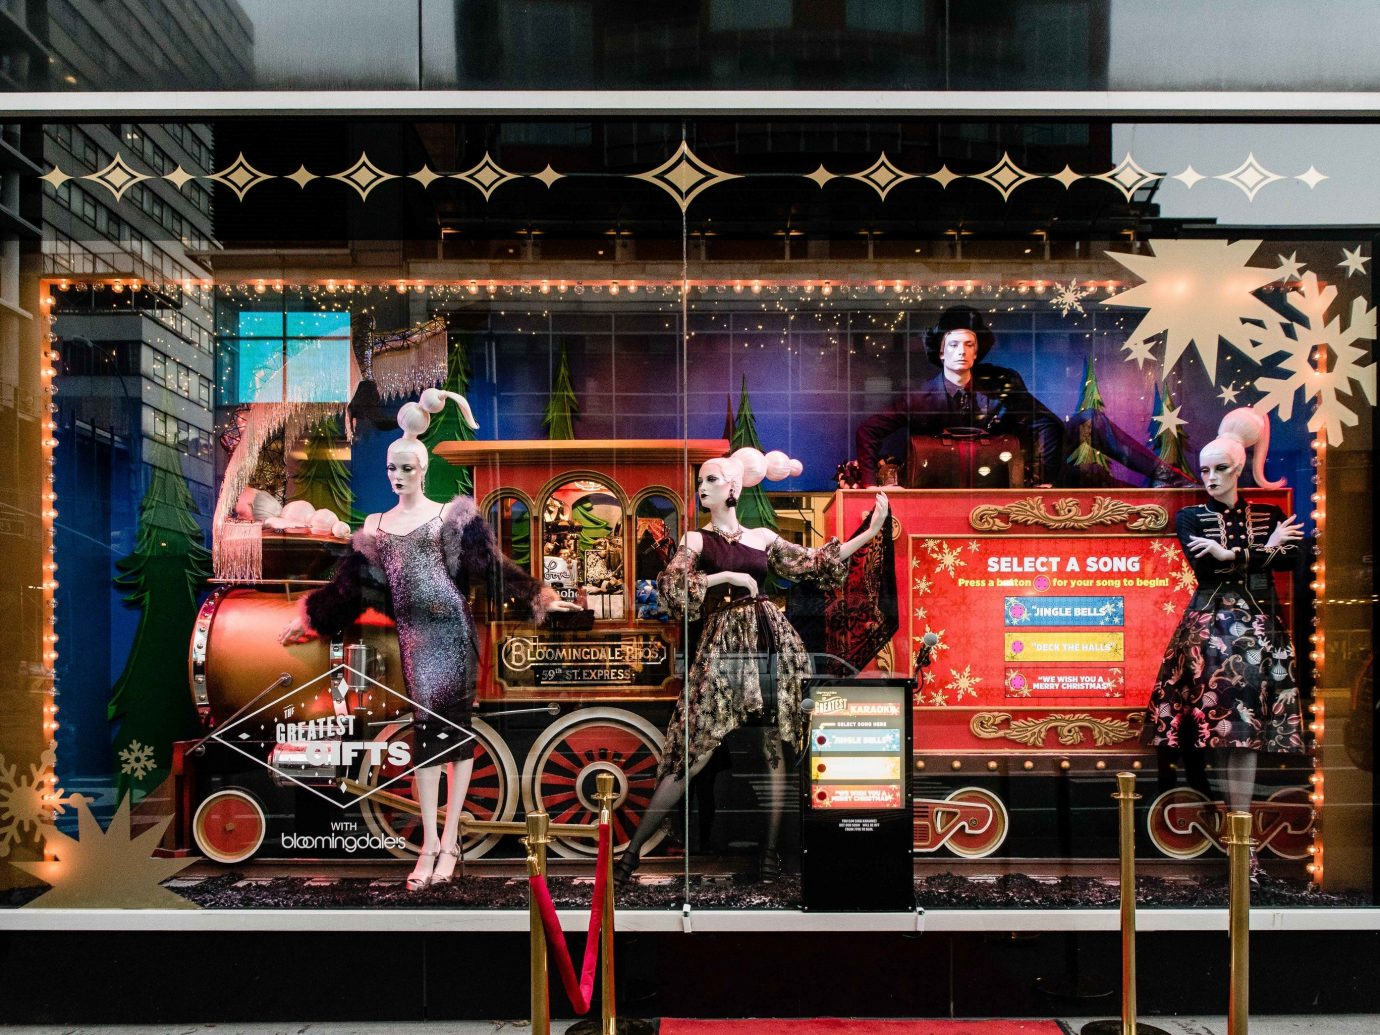 Offbeat Winter display window stage recreation decorated